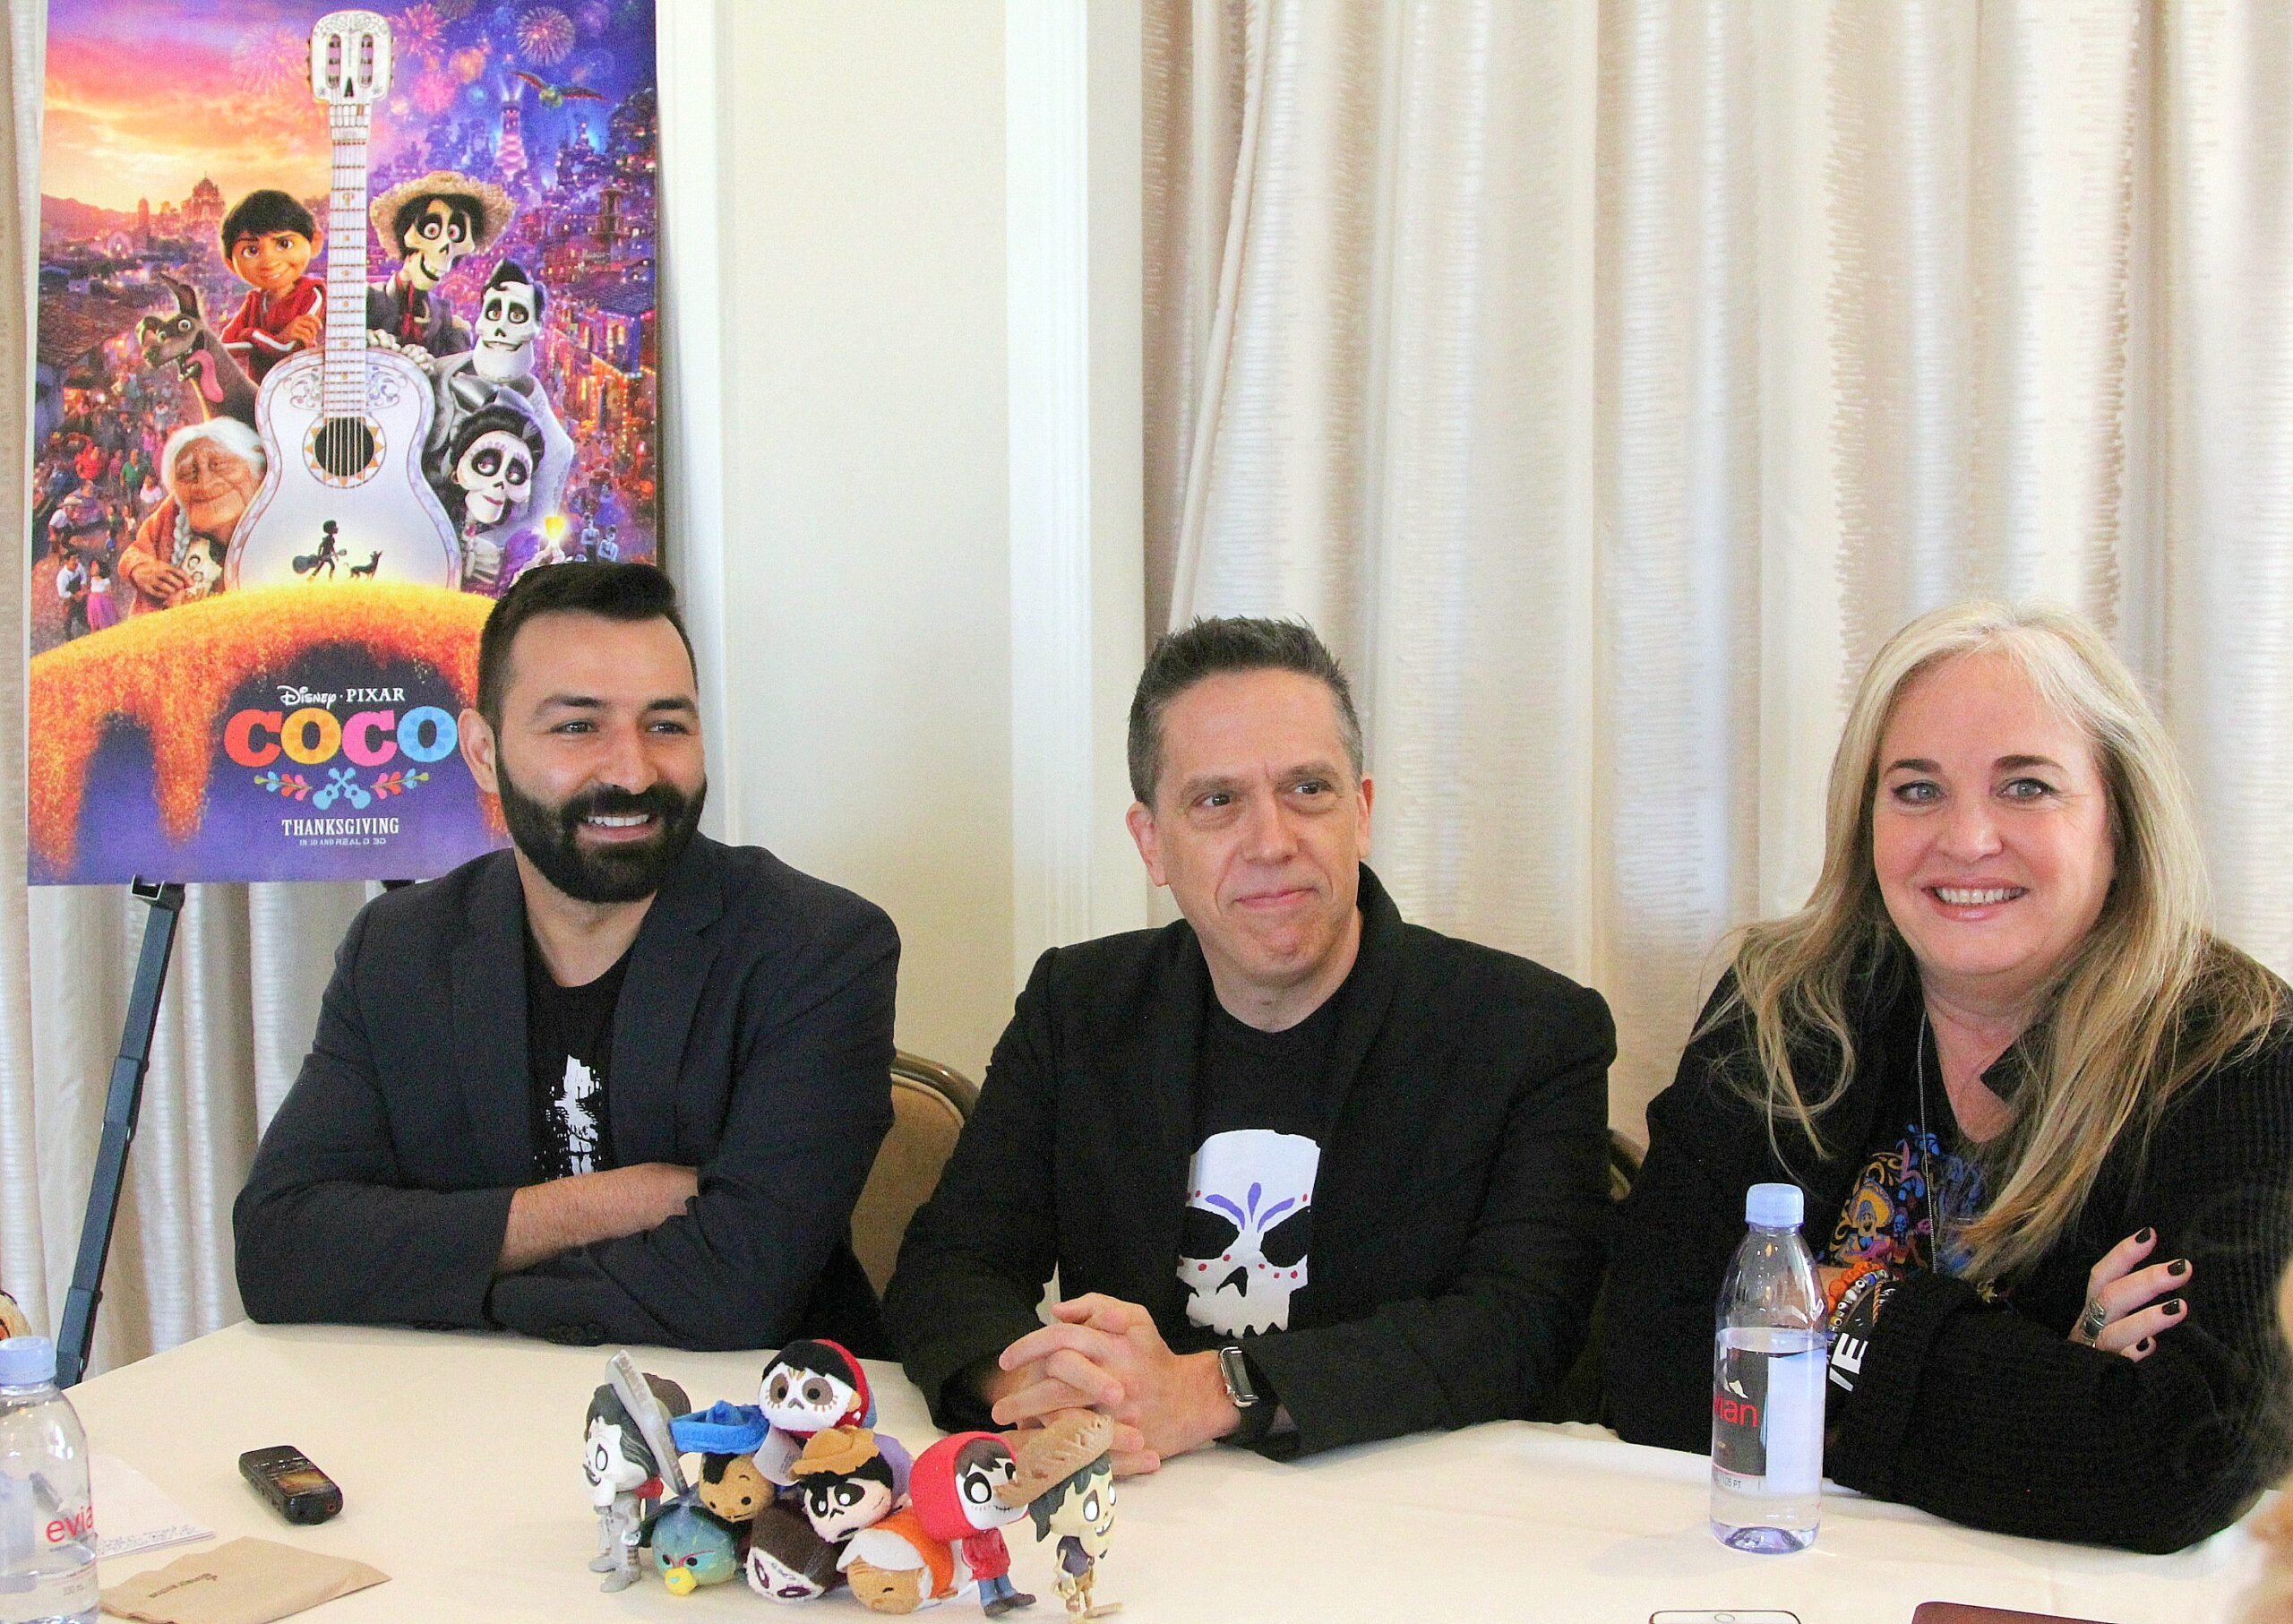 Exclusive Interview With Disney Pixars COCO Director Lee Unkrich, Writer & Co-Director Adrian Molina and Producer Darla K. Anderson